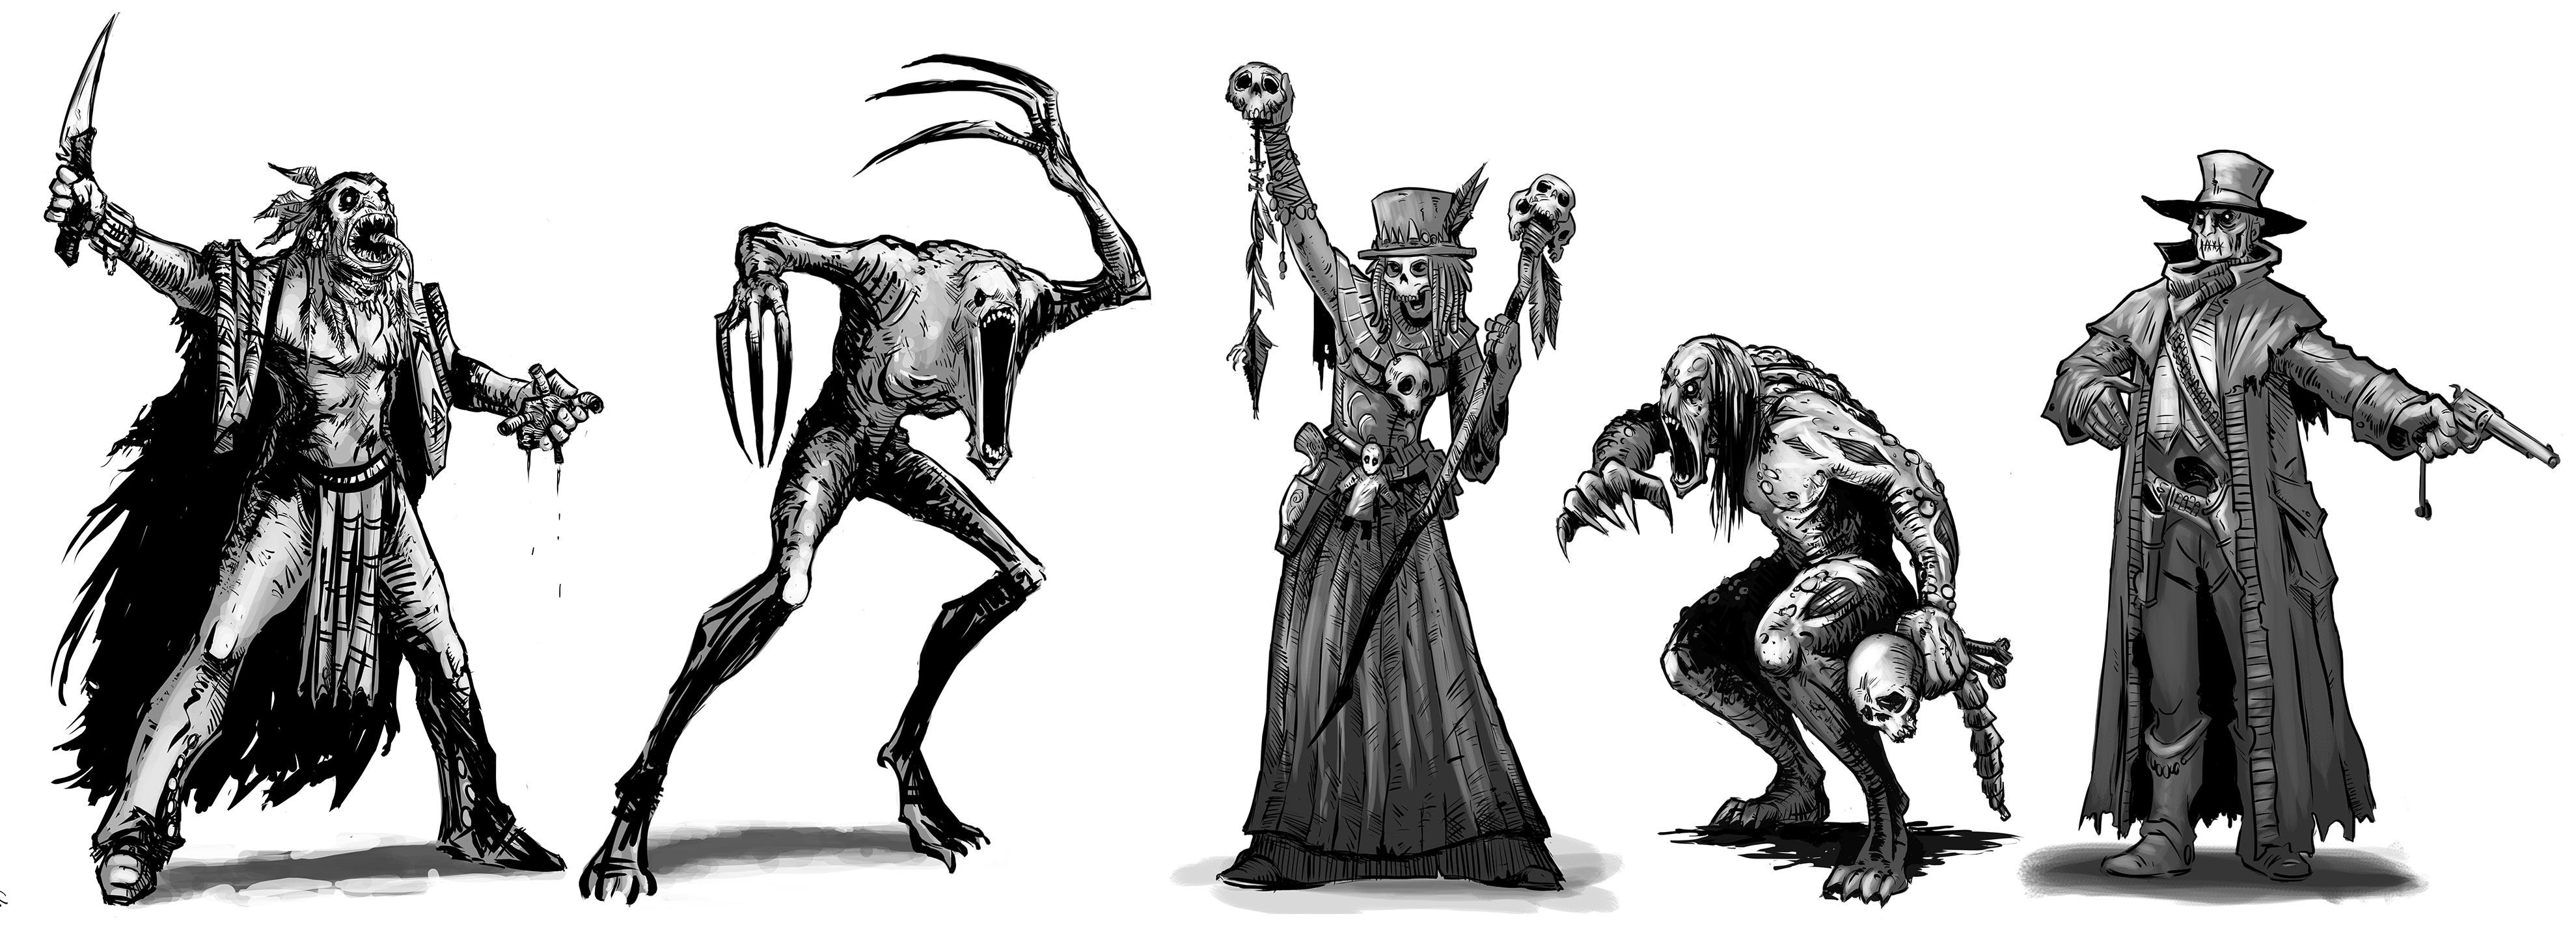 The Wicked concept art